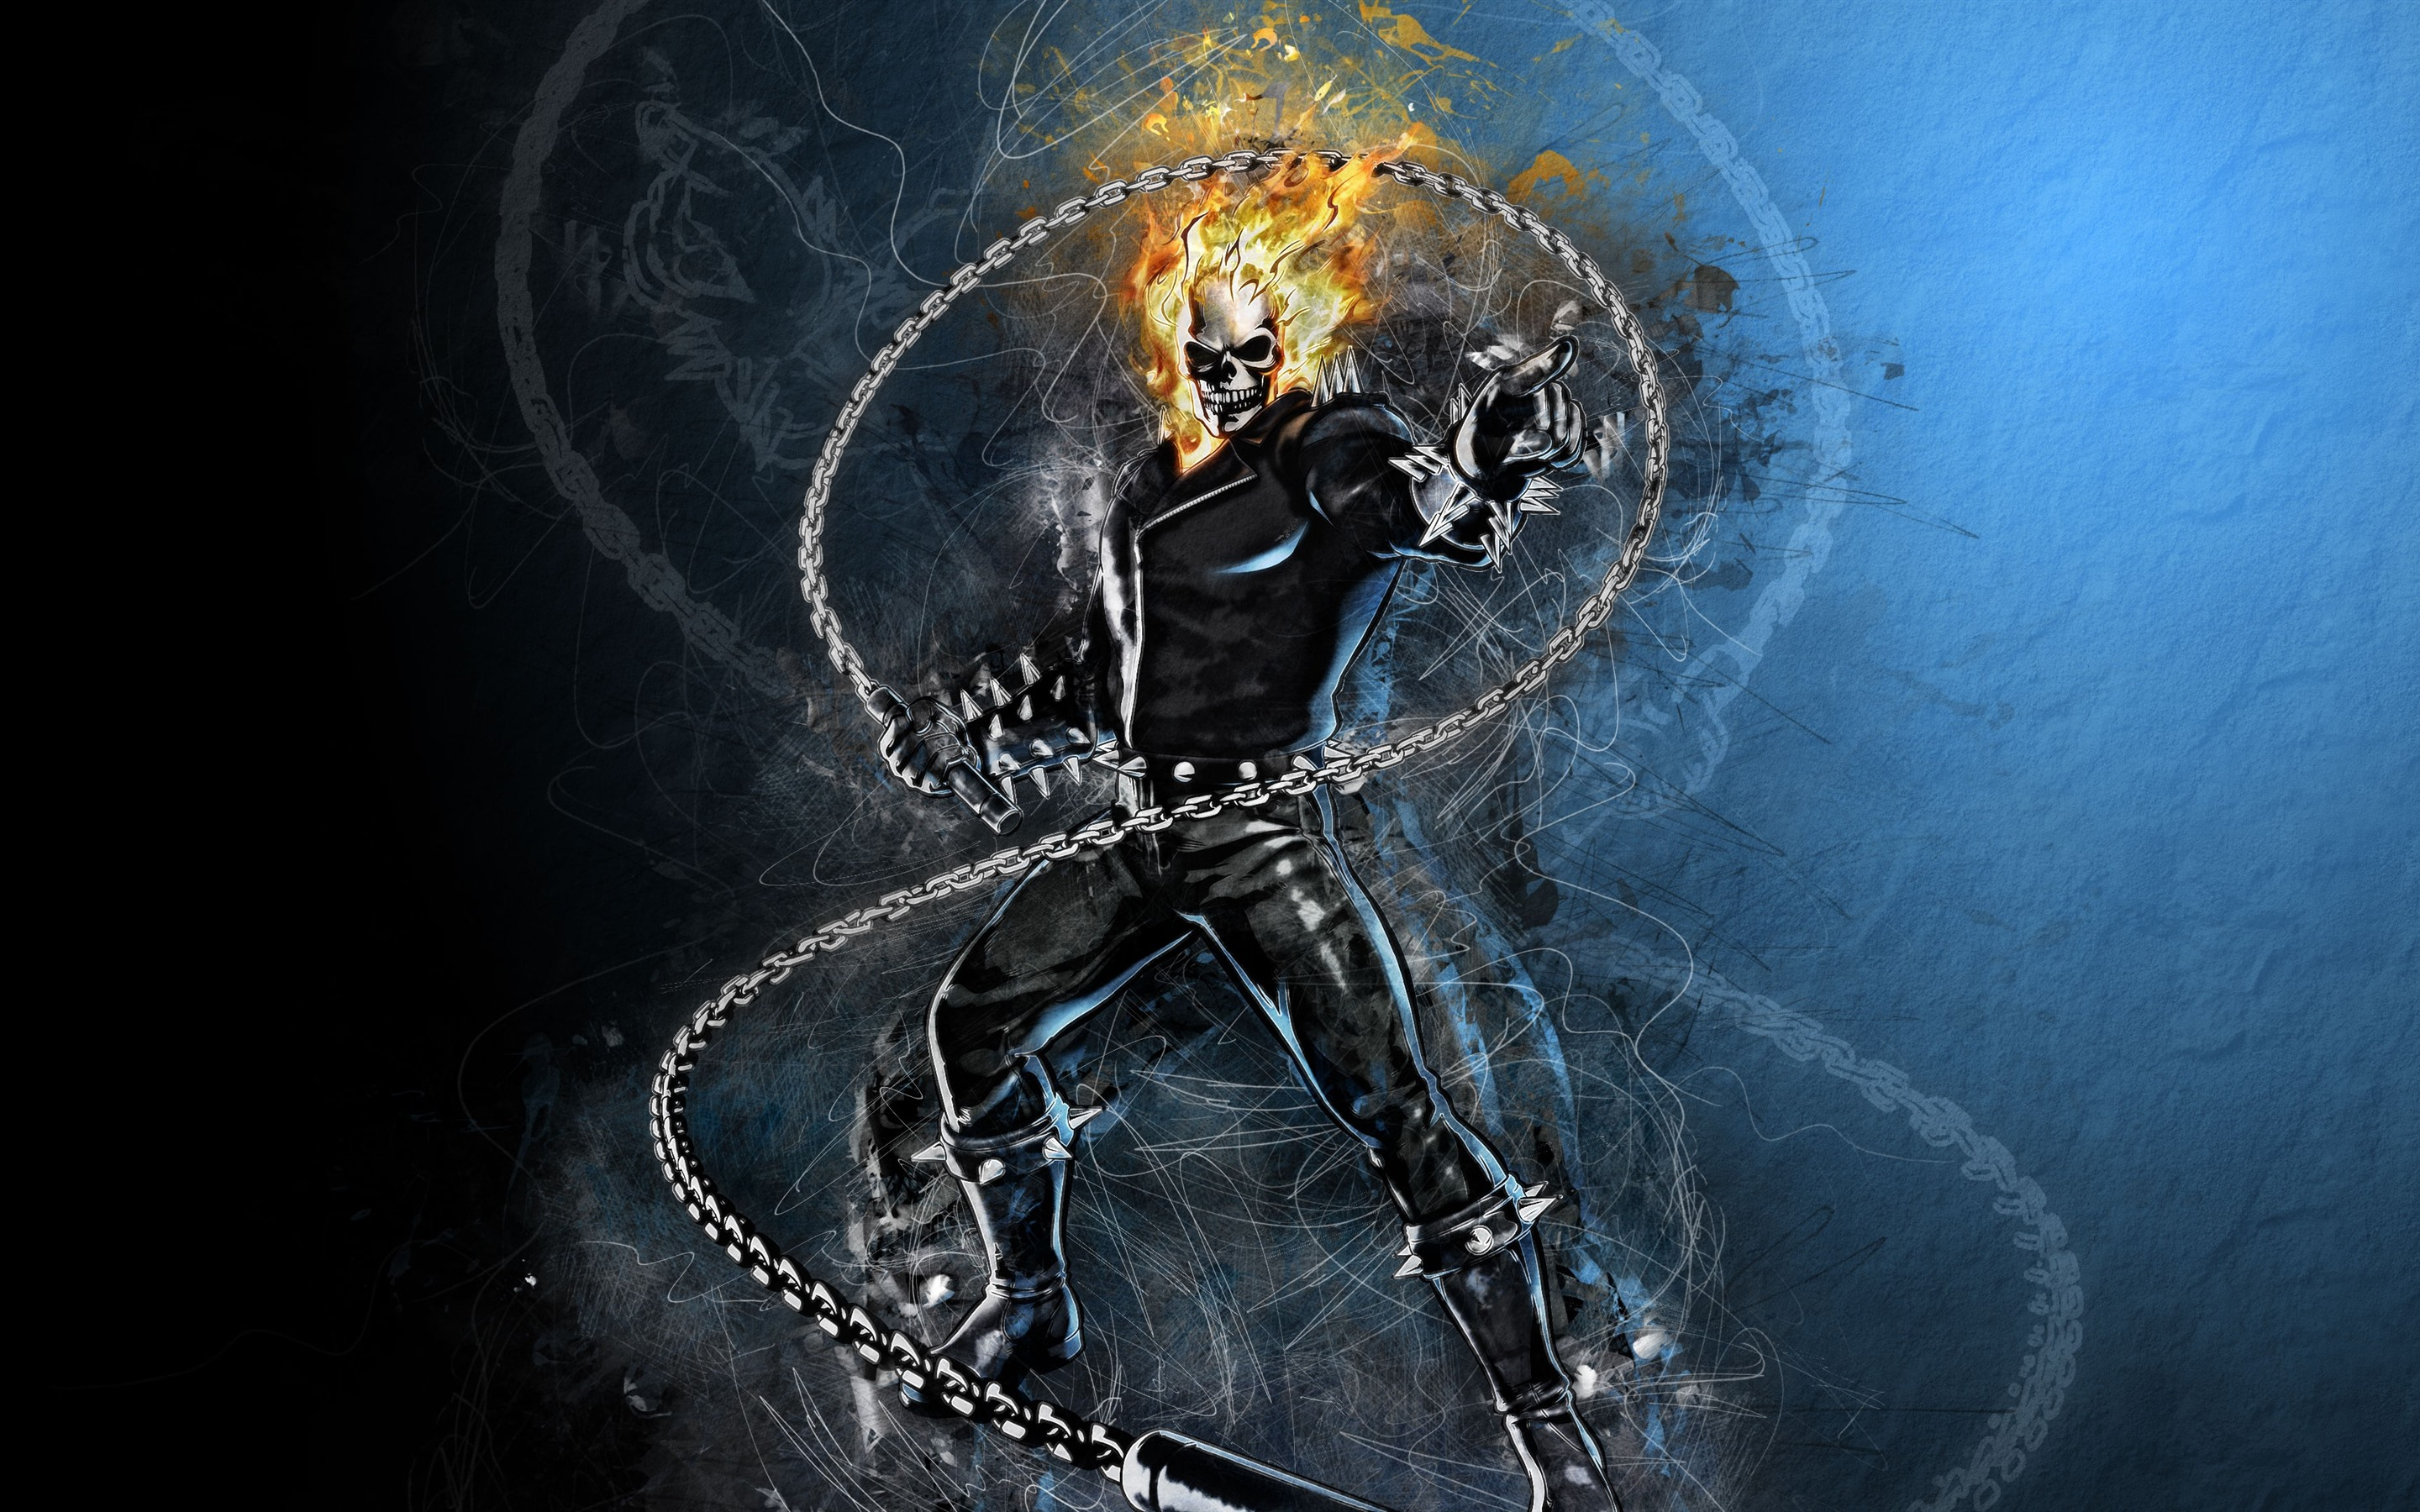 Wallpaper Hd Ghost Rider Wallpaper Ghost Rider Marvel Dc Comics Art Picture